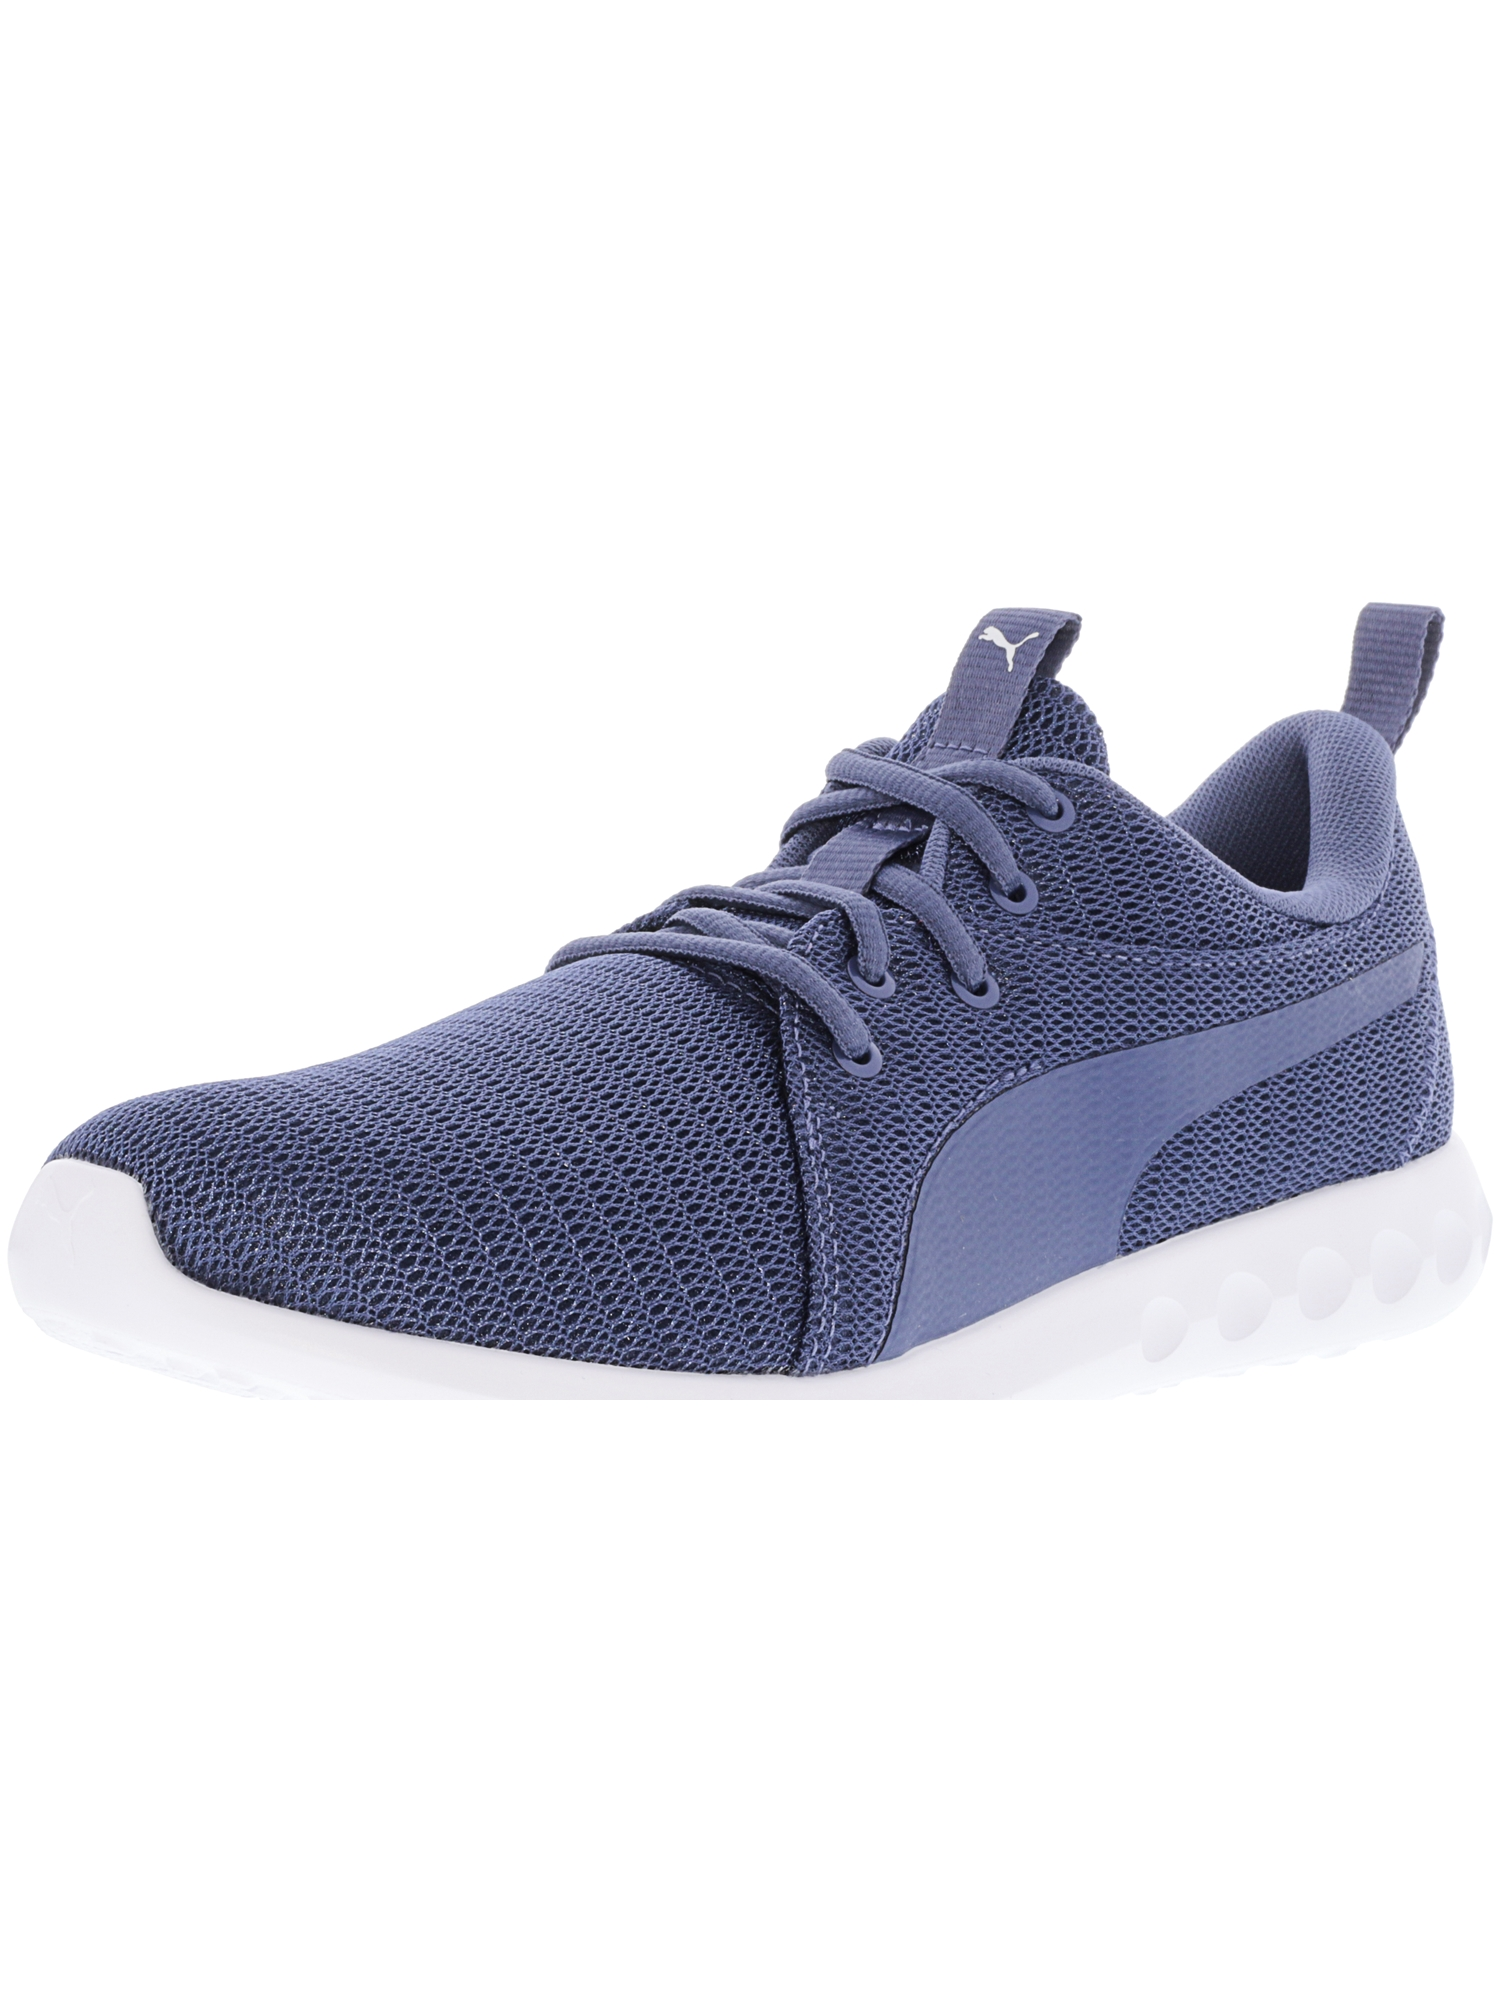 Puma Women's Carson 2 Blue Indigo Ankle-High Fabric Running Shoe - 8.5M